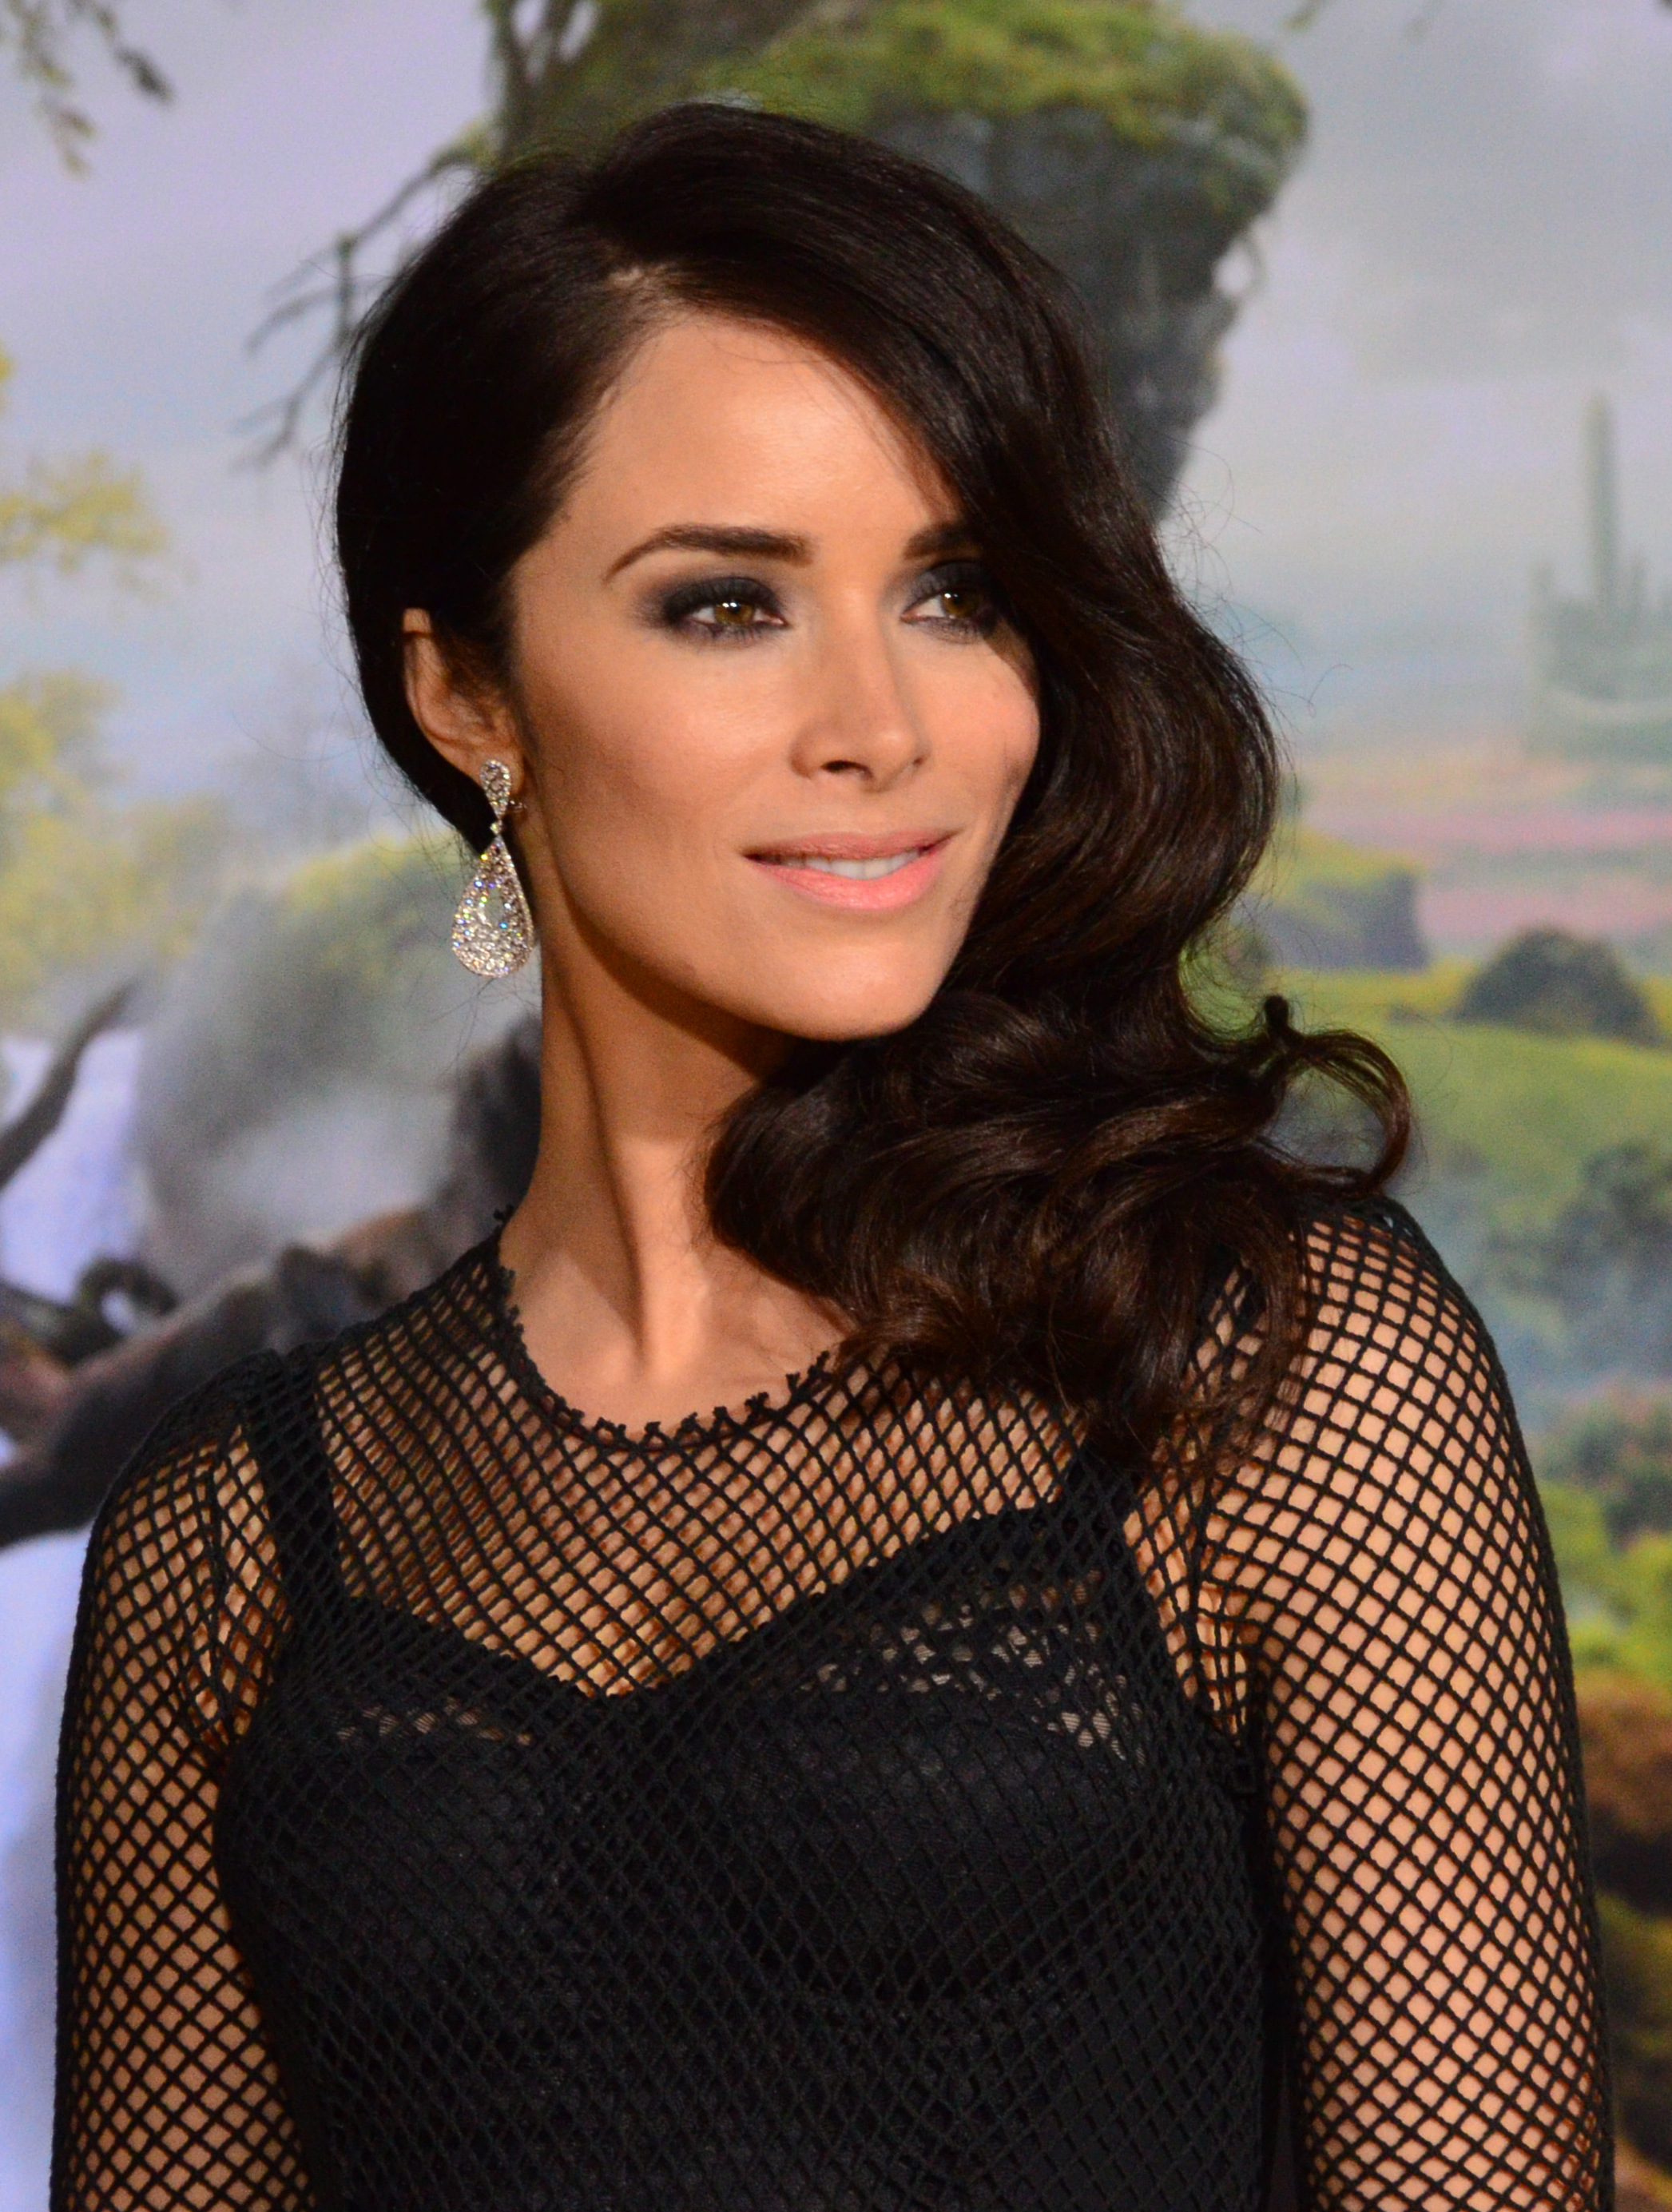 The 35-year old daughter of father Yancy Spencer III and mother Lydia Ann Brown, 165 cm tall Abigail Spencer in 2017 photo